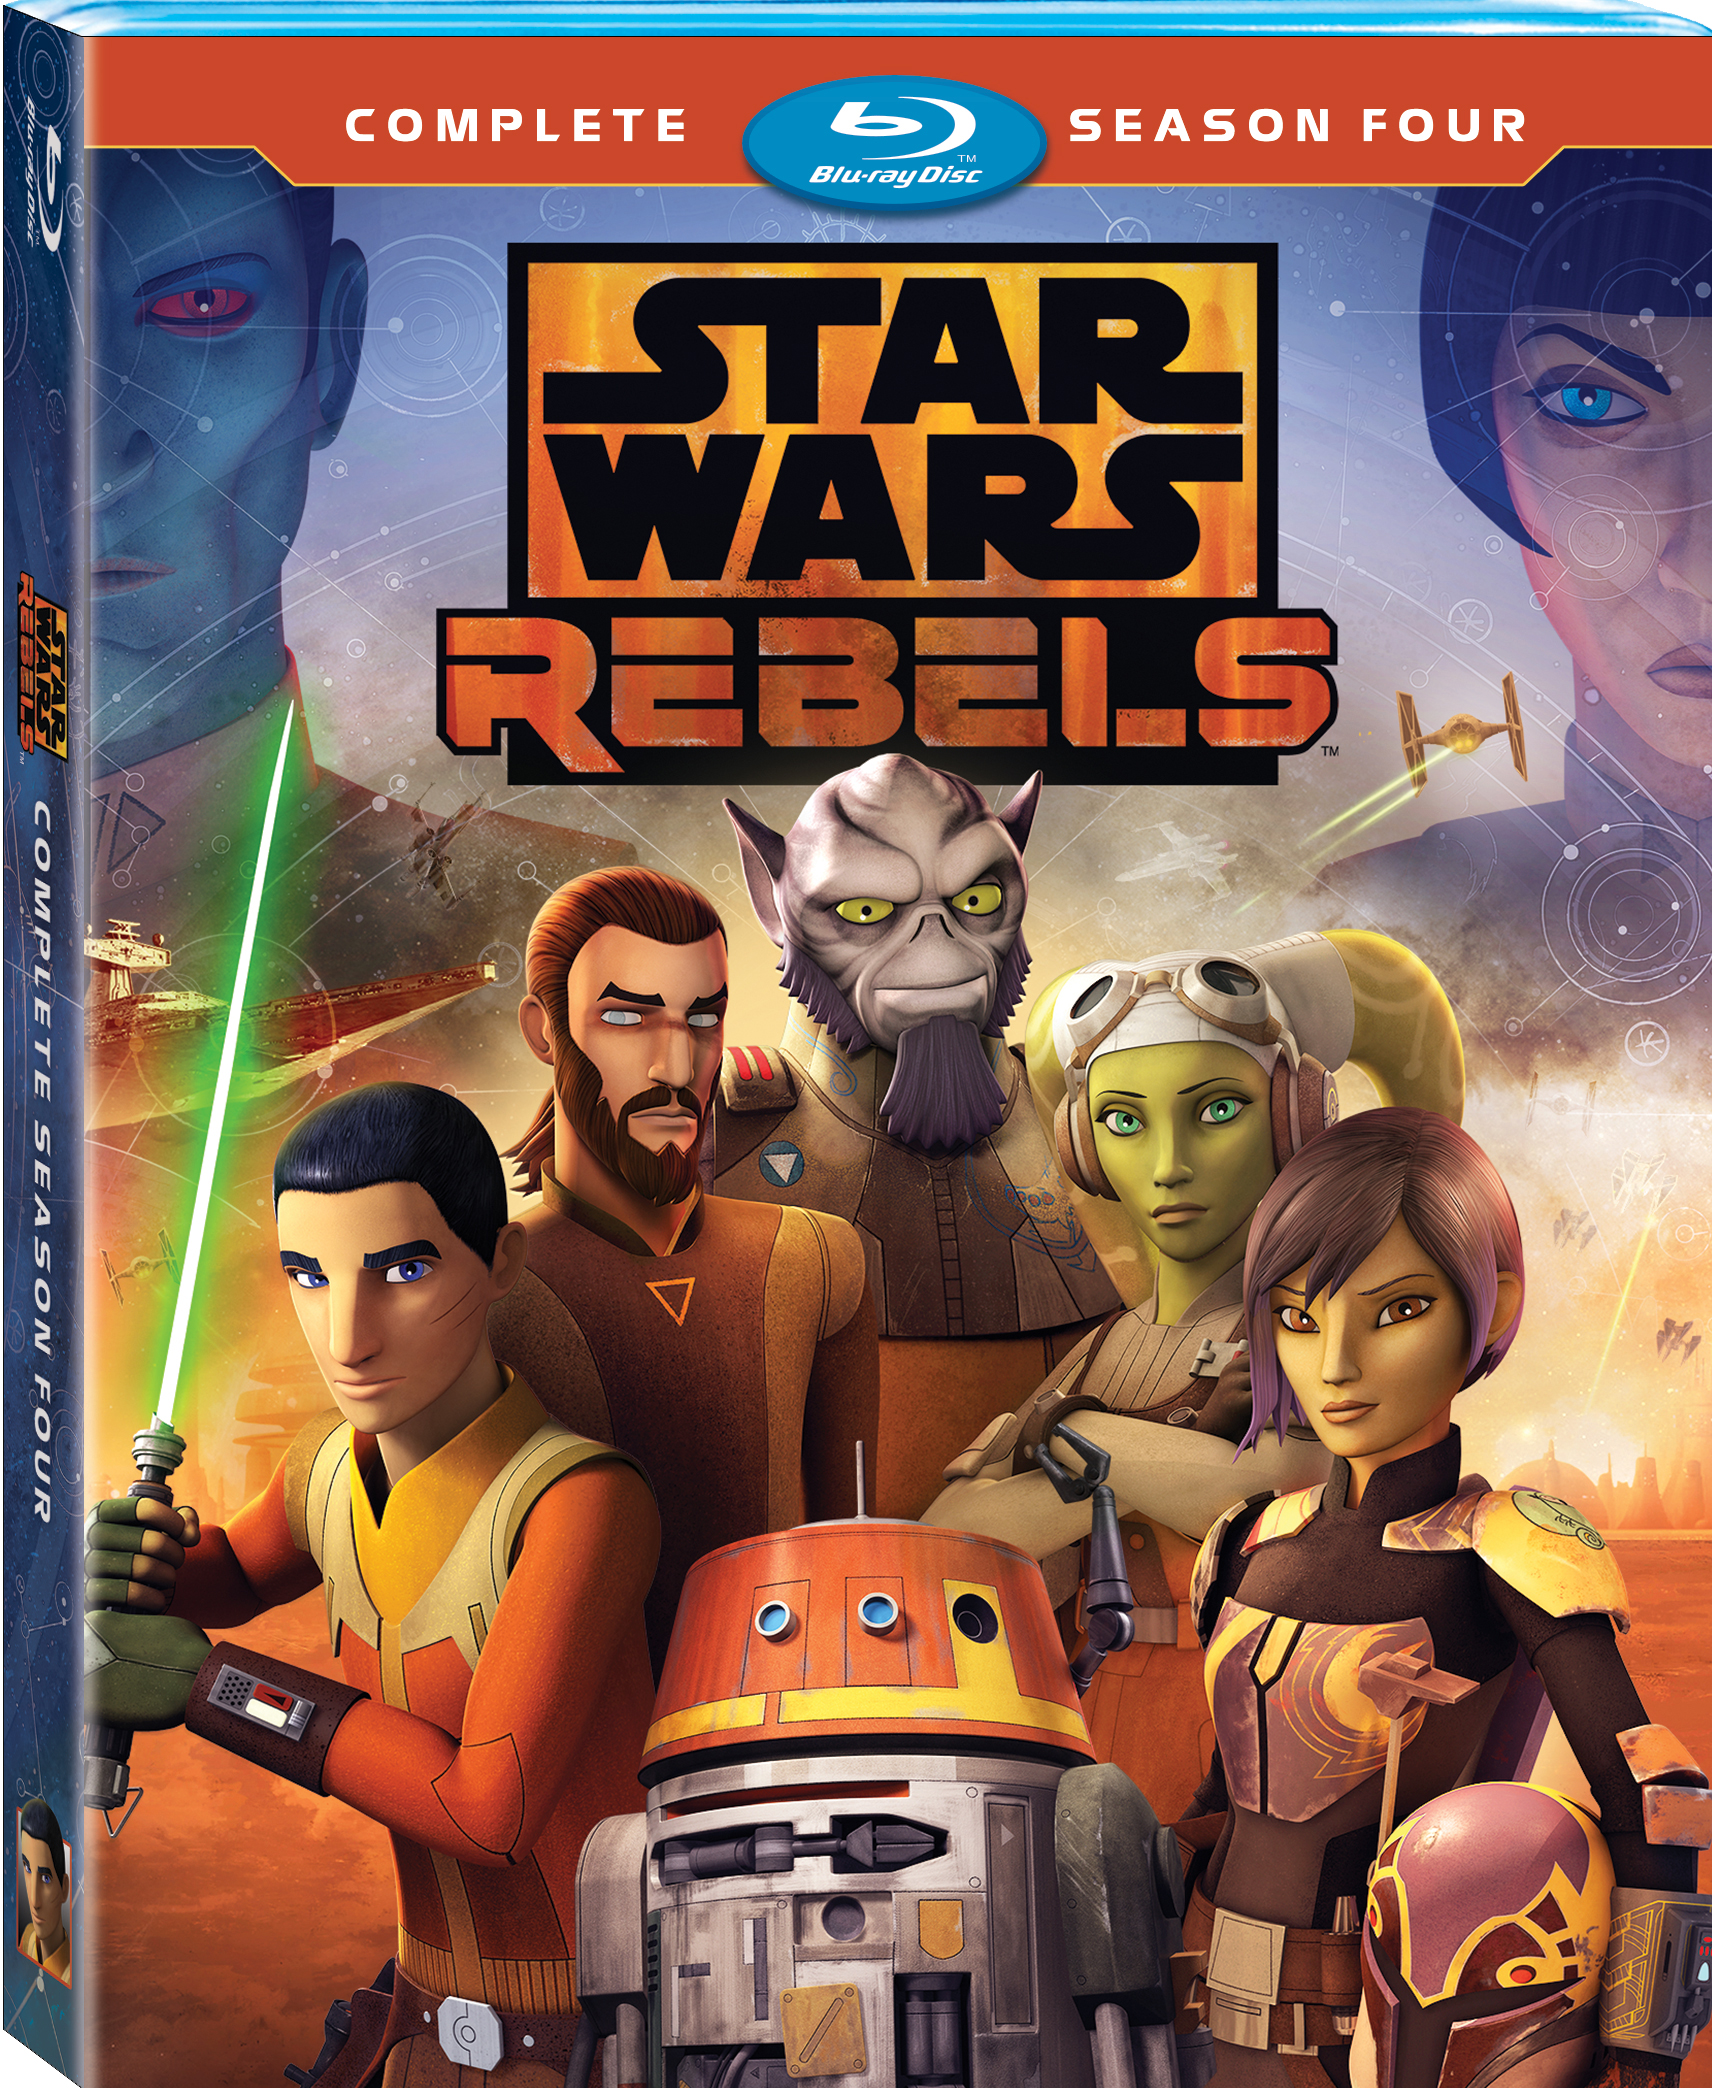 Star Wars Rebels Season 4 Kit Giveaway!